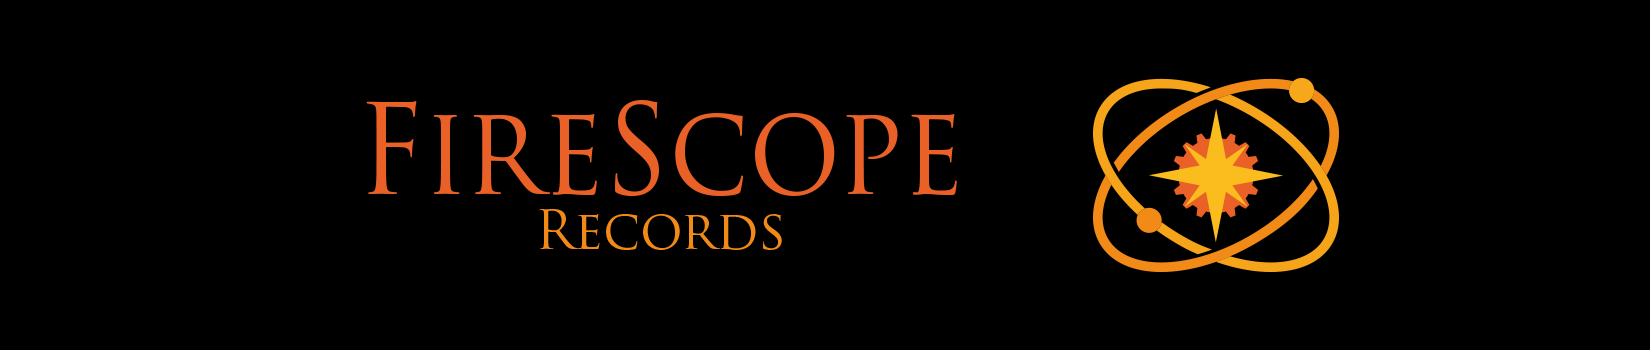 FireScope Records